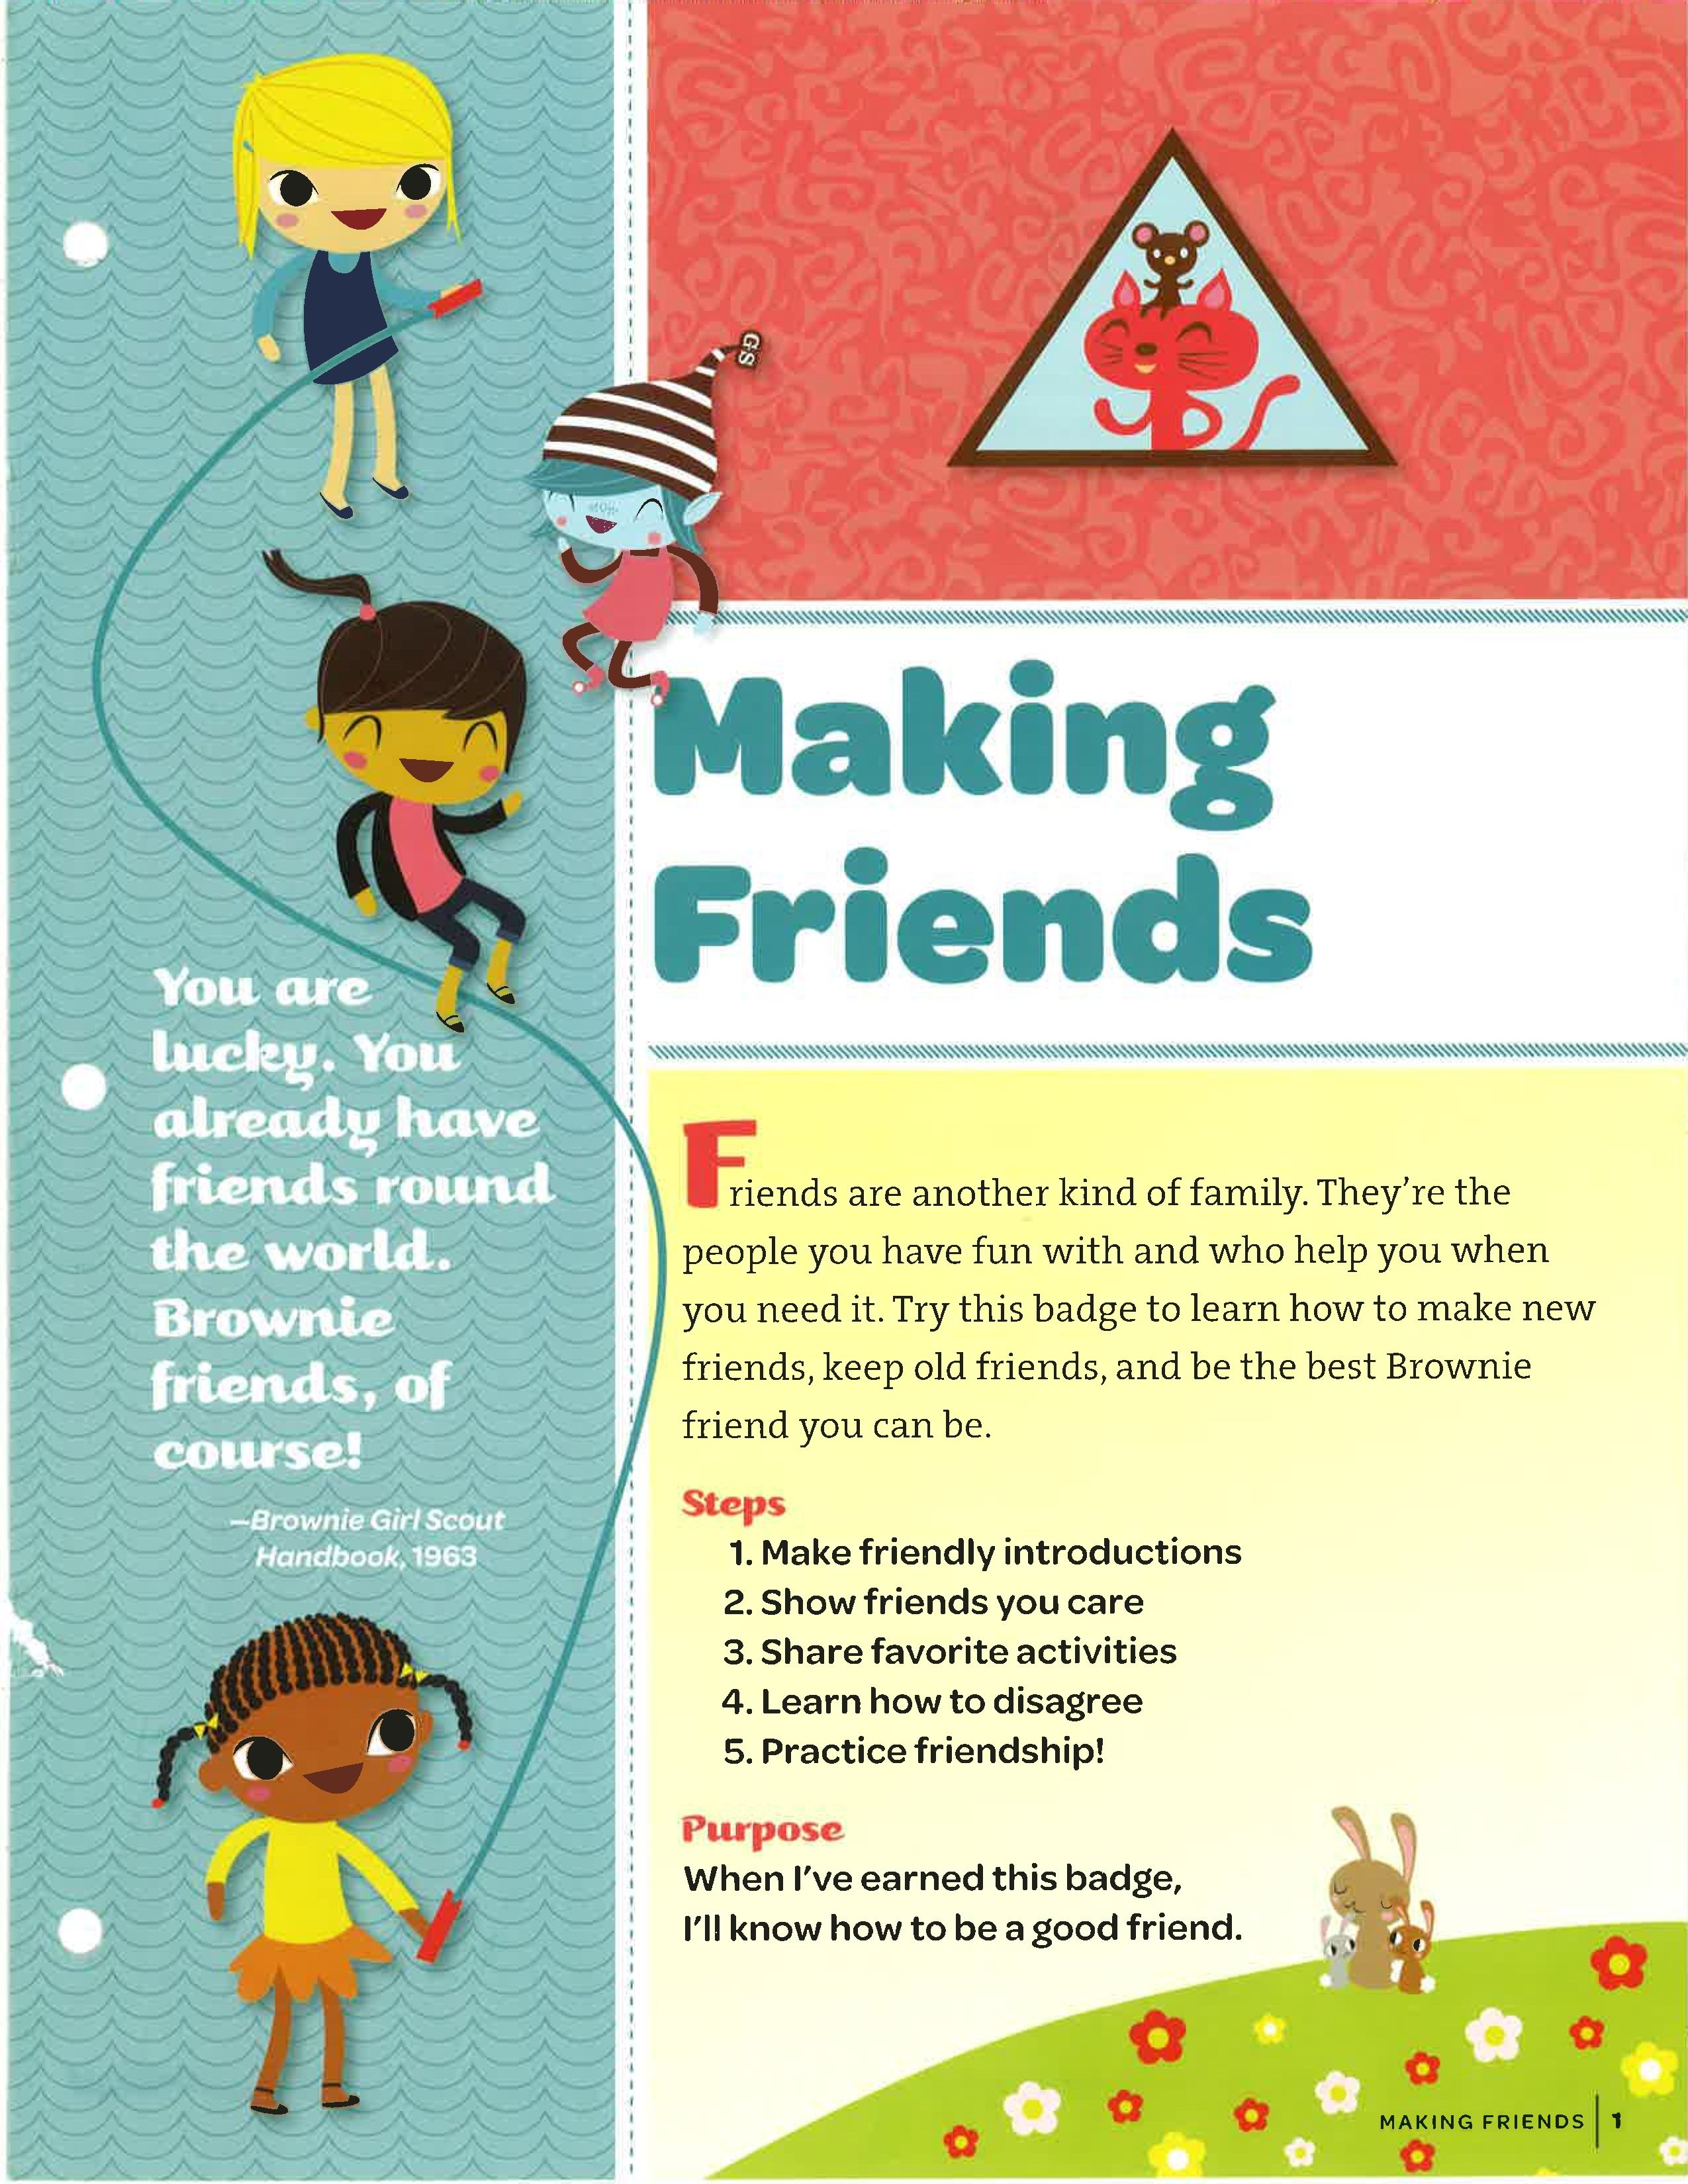 Steps to making friends